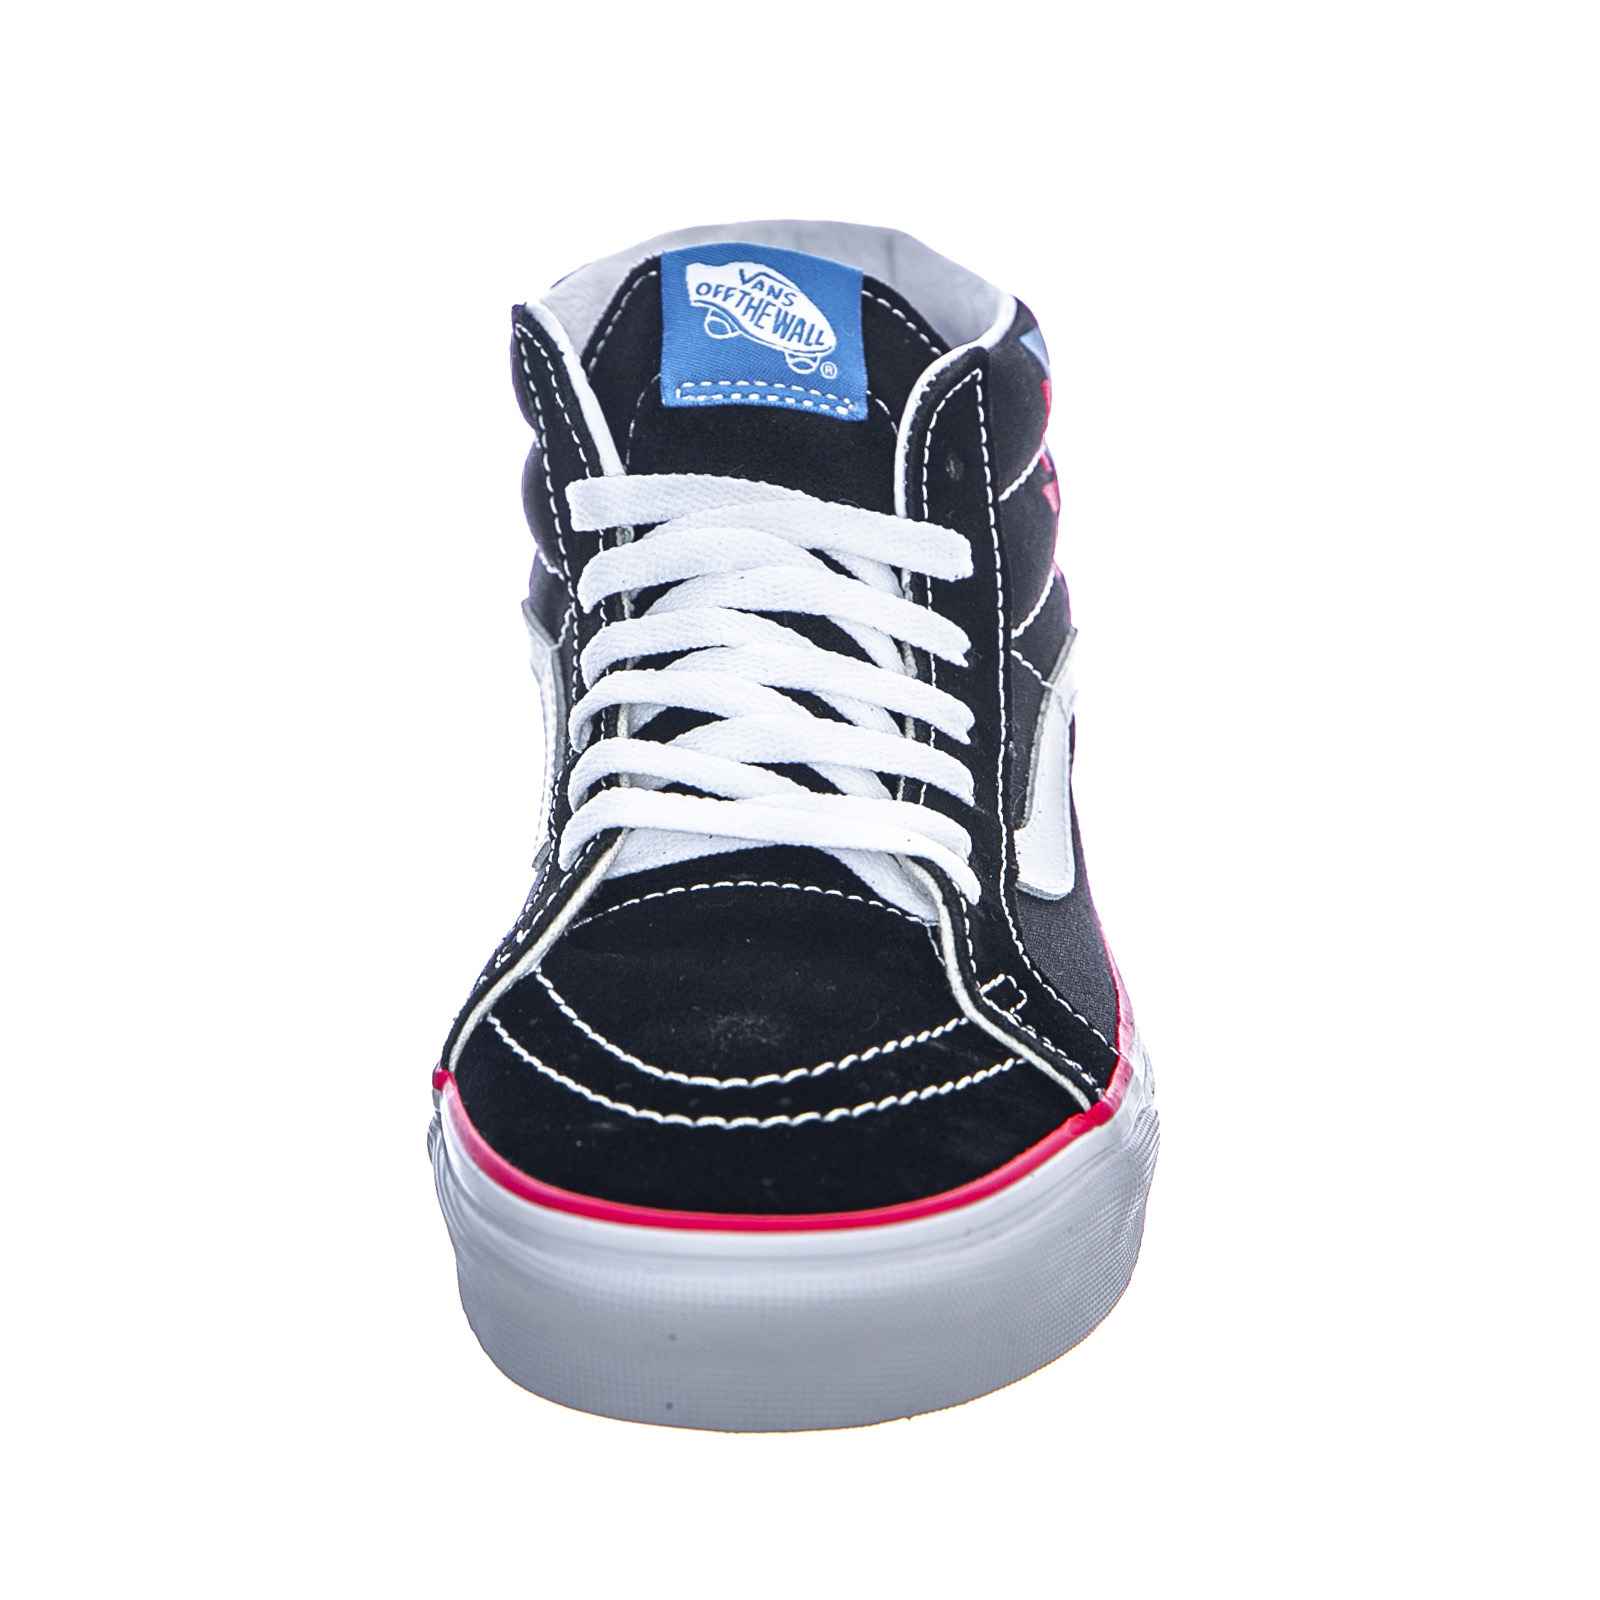 VANS UA CALIFORNIA Native Sk8 Mid Reissue BlackSky Diver